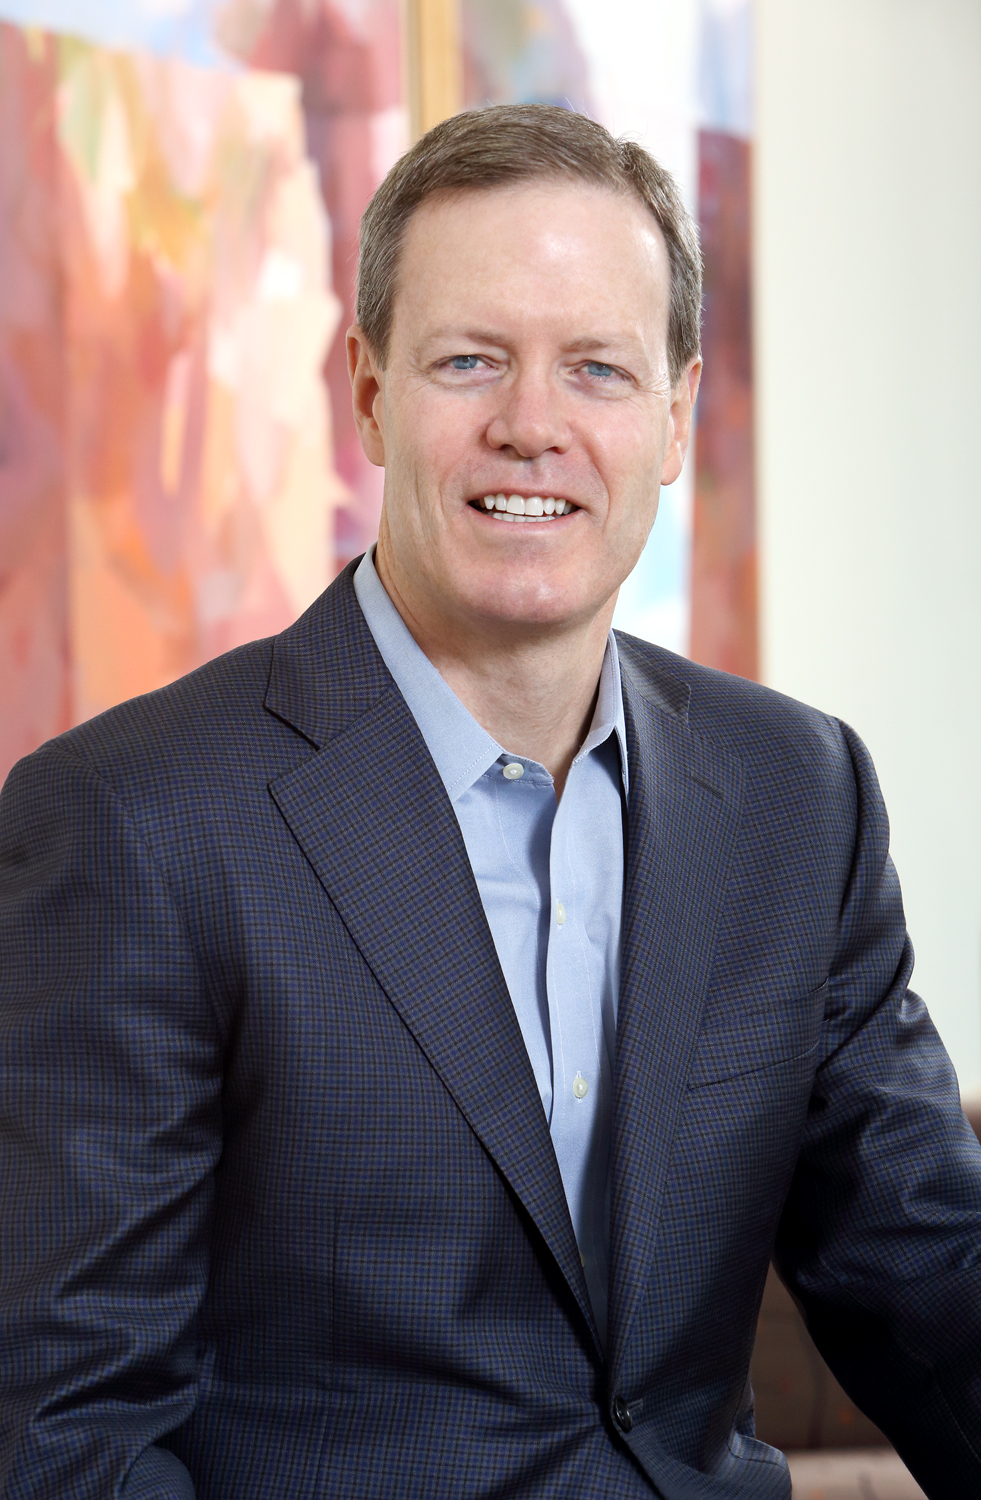 Michael Roman, executive vice president of 3M's Industrial Business Group